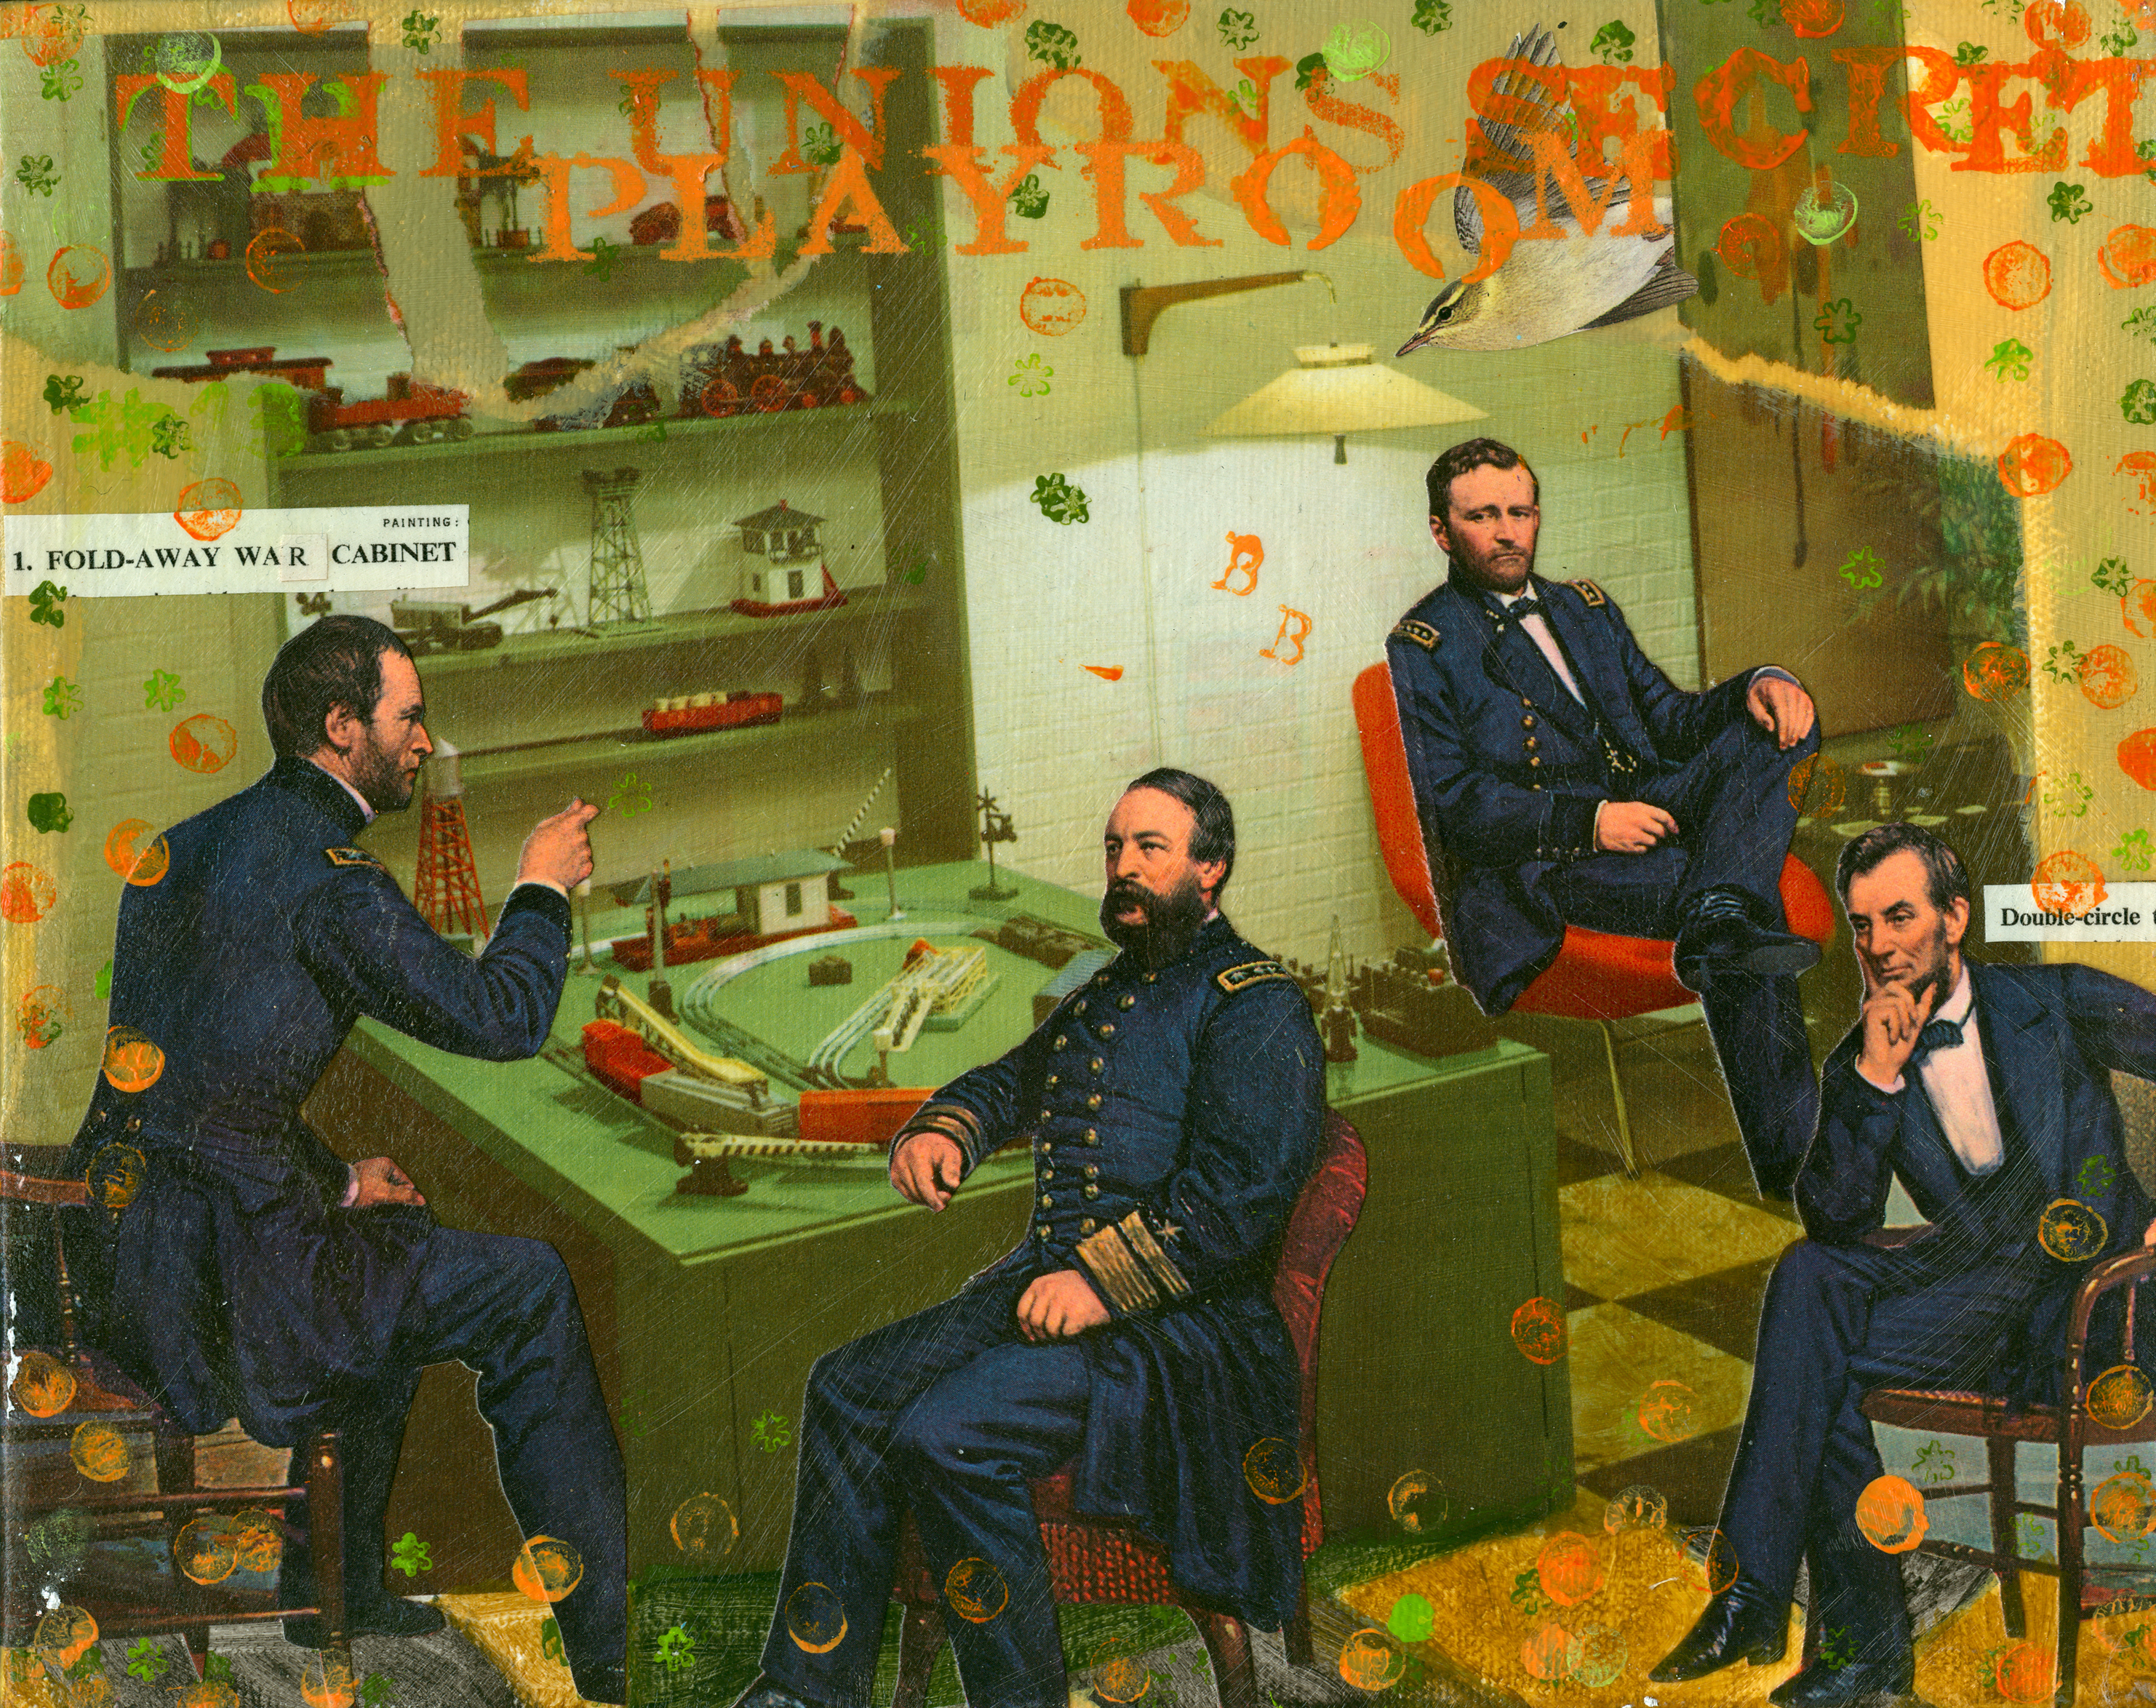 Union Army At Play